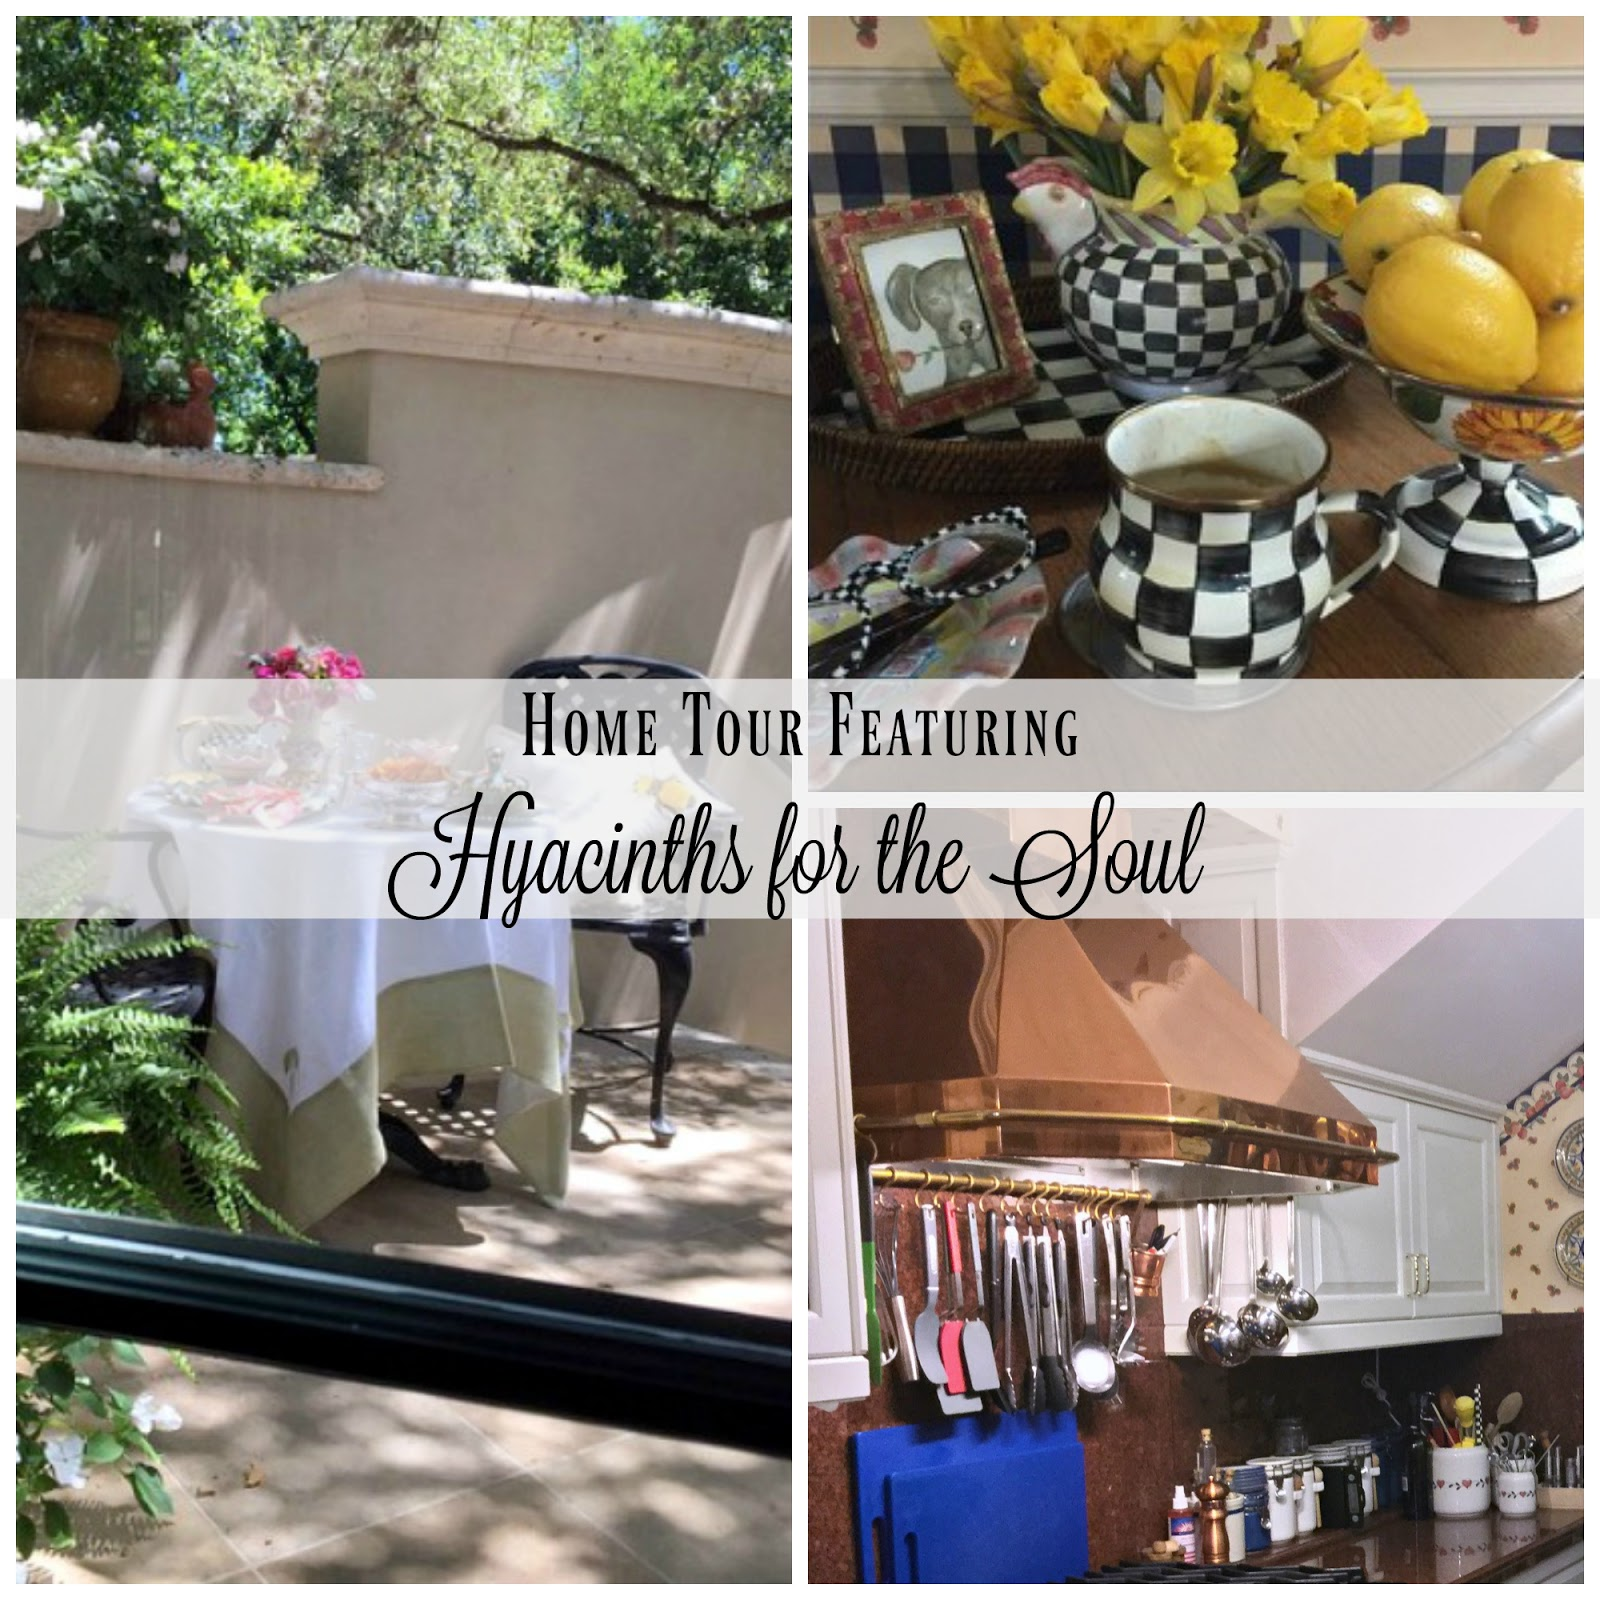 Austin TX home and garden tour. Features cottage style touches including French and English antiques. Lush gardens with places to sit and enjoy the shade.